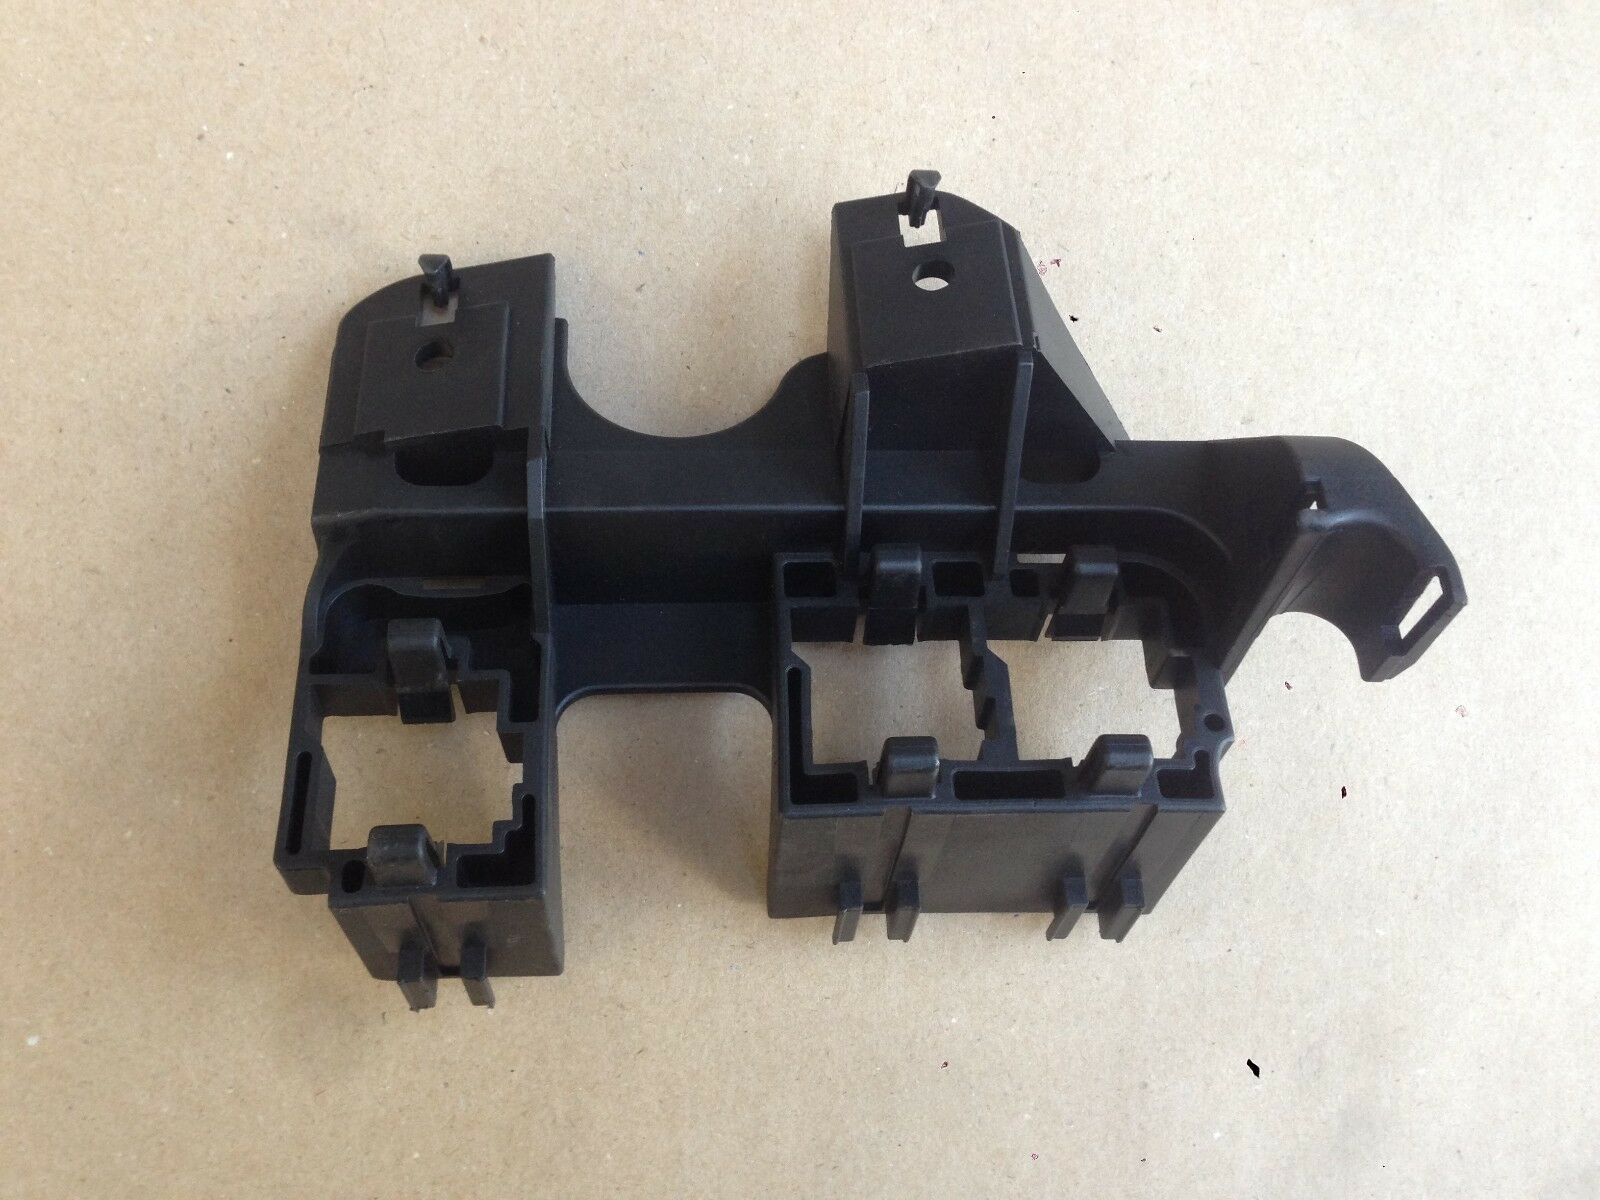 Audi A4 B7 20 Tdi 04 08 Fuse Box Relay Holder Bracket Plate 8e2937503 1 Of 3only Available